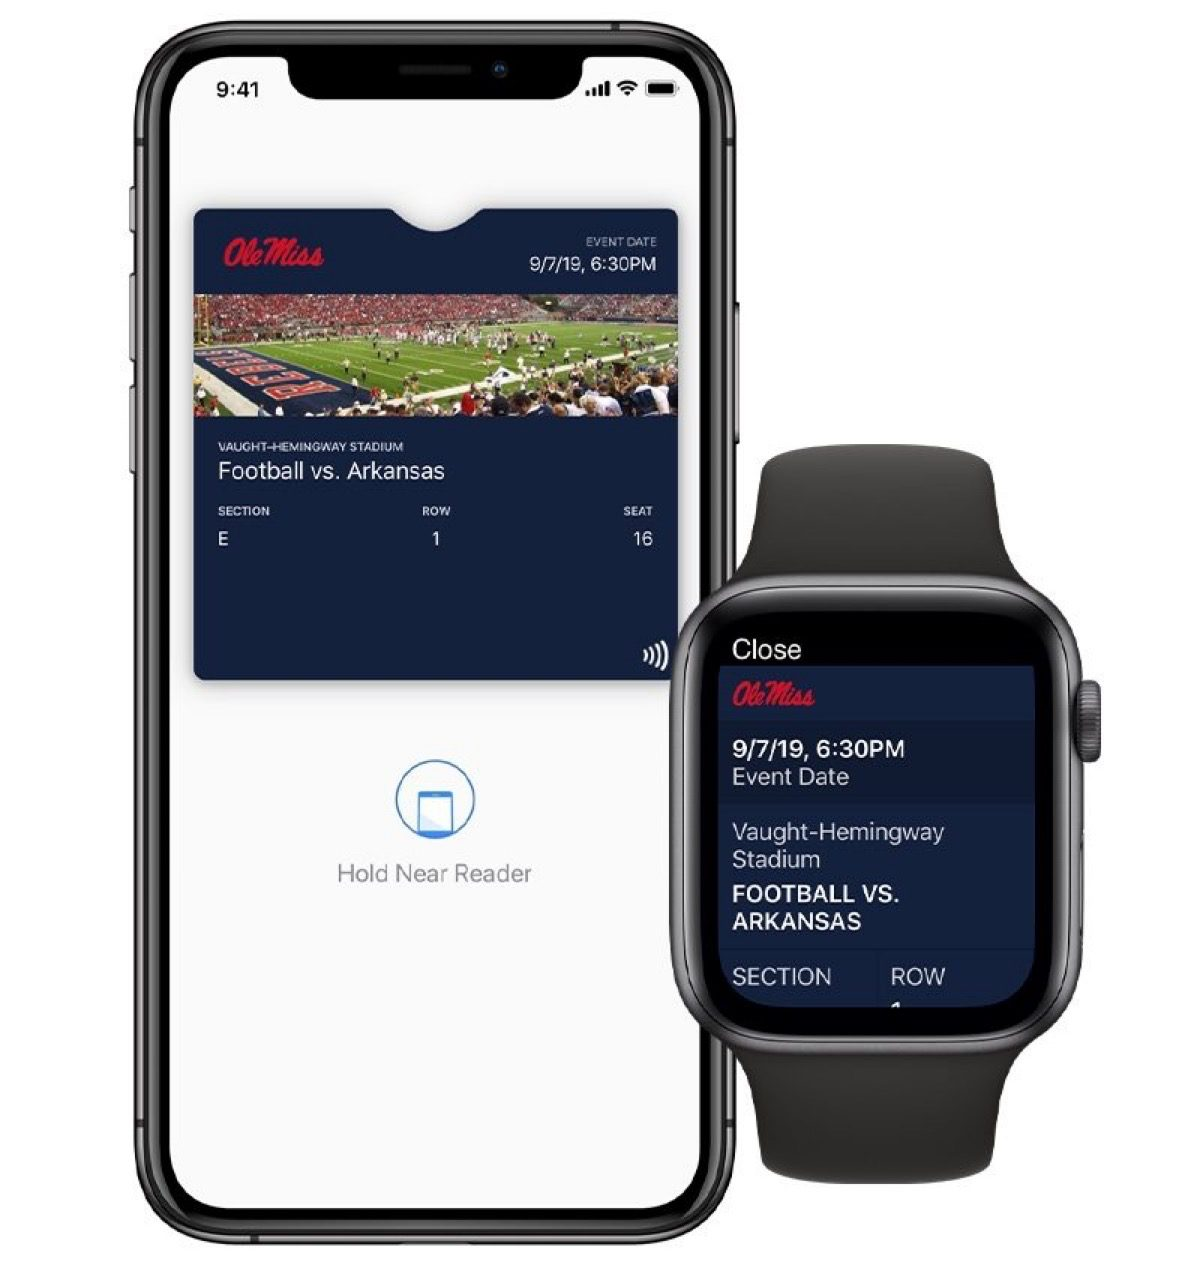 Apple Watch college ticket support